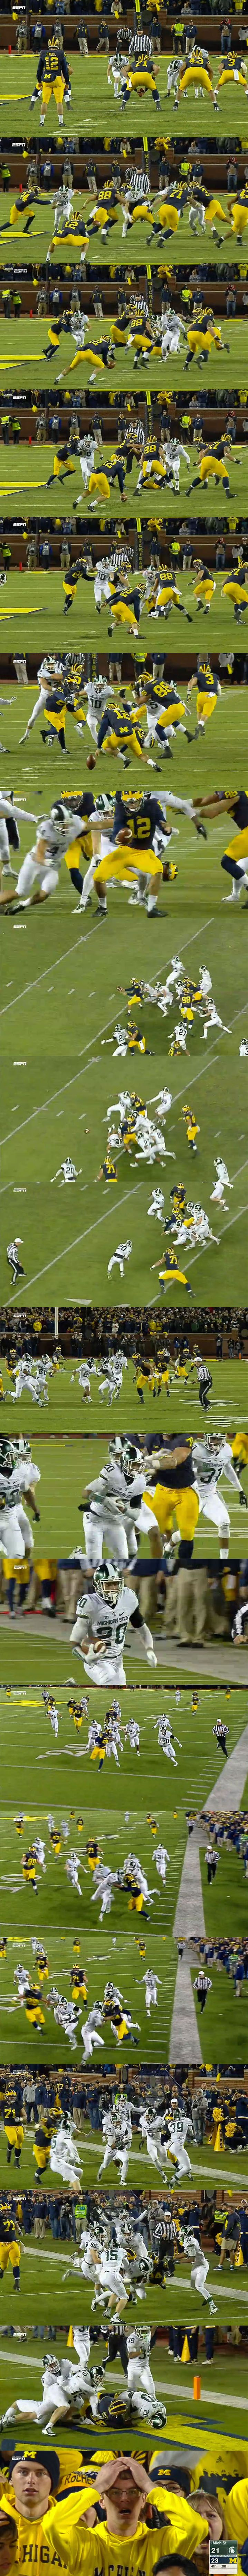 No one will ever forget the jaw-dropping finish to the Michigan vs. Michigan State game.